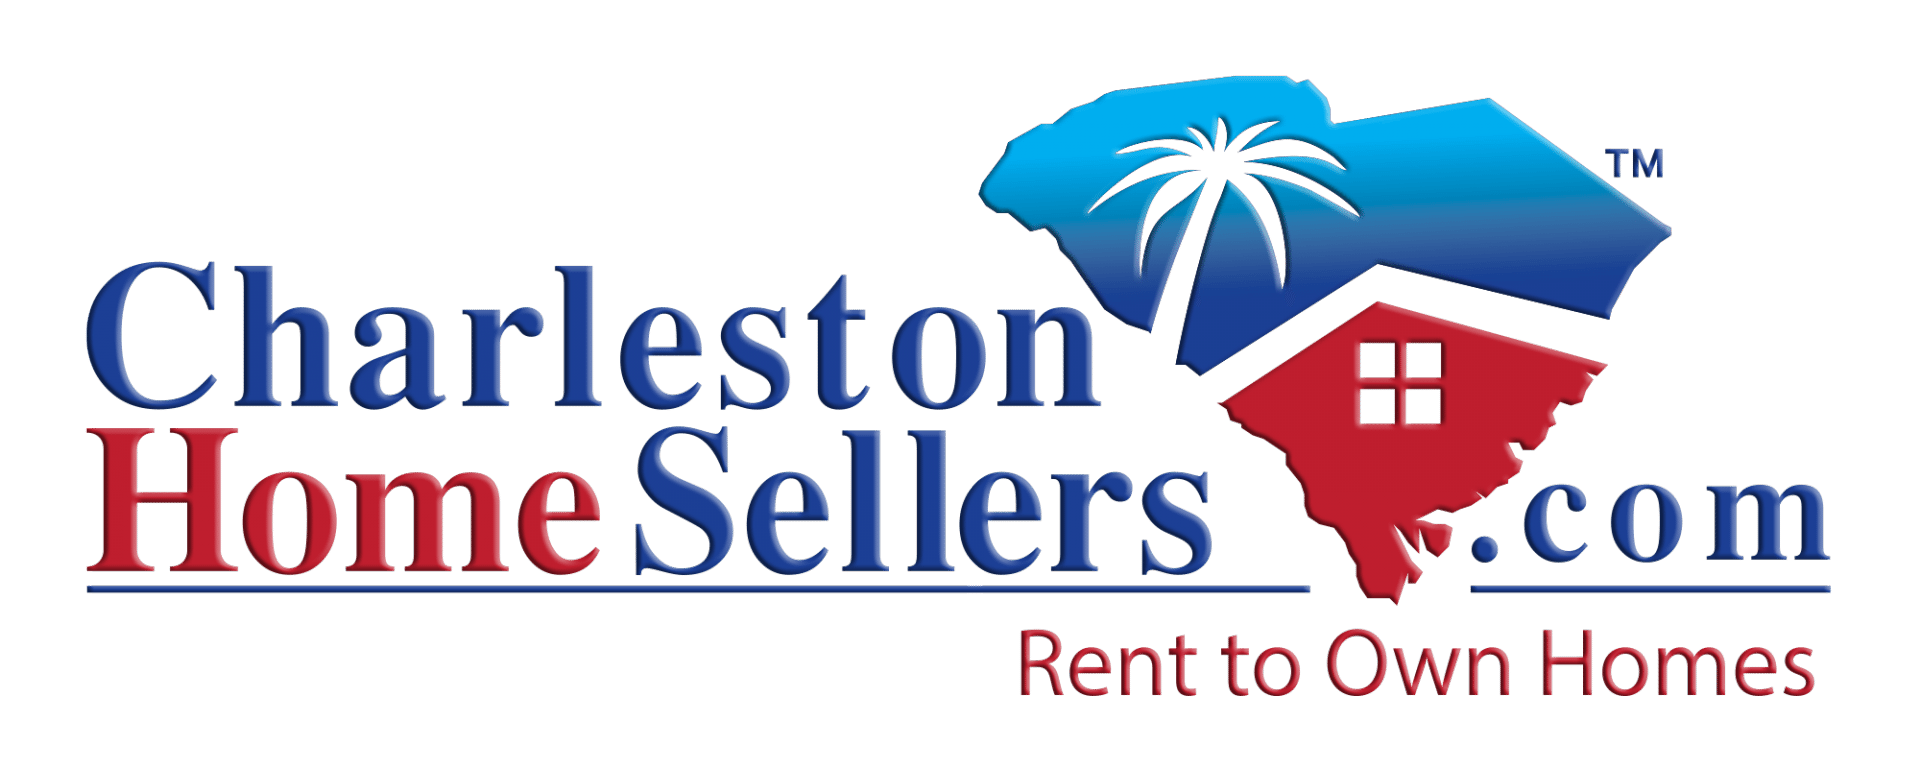 Charleston Home Sellers logo